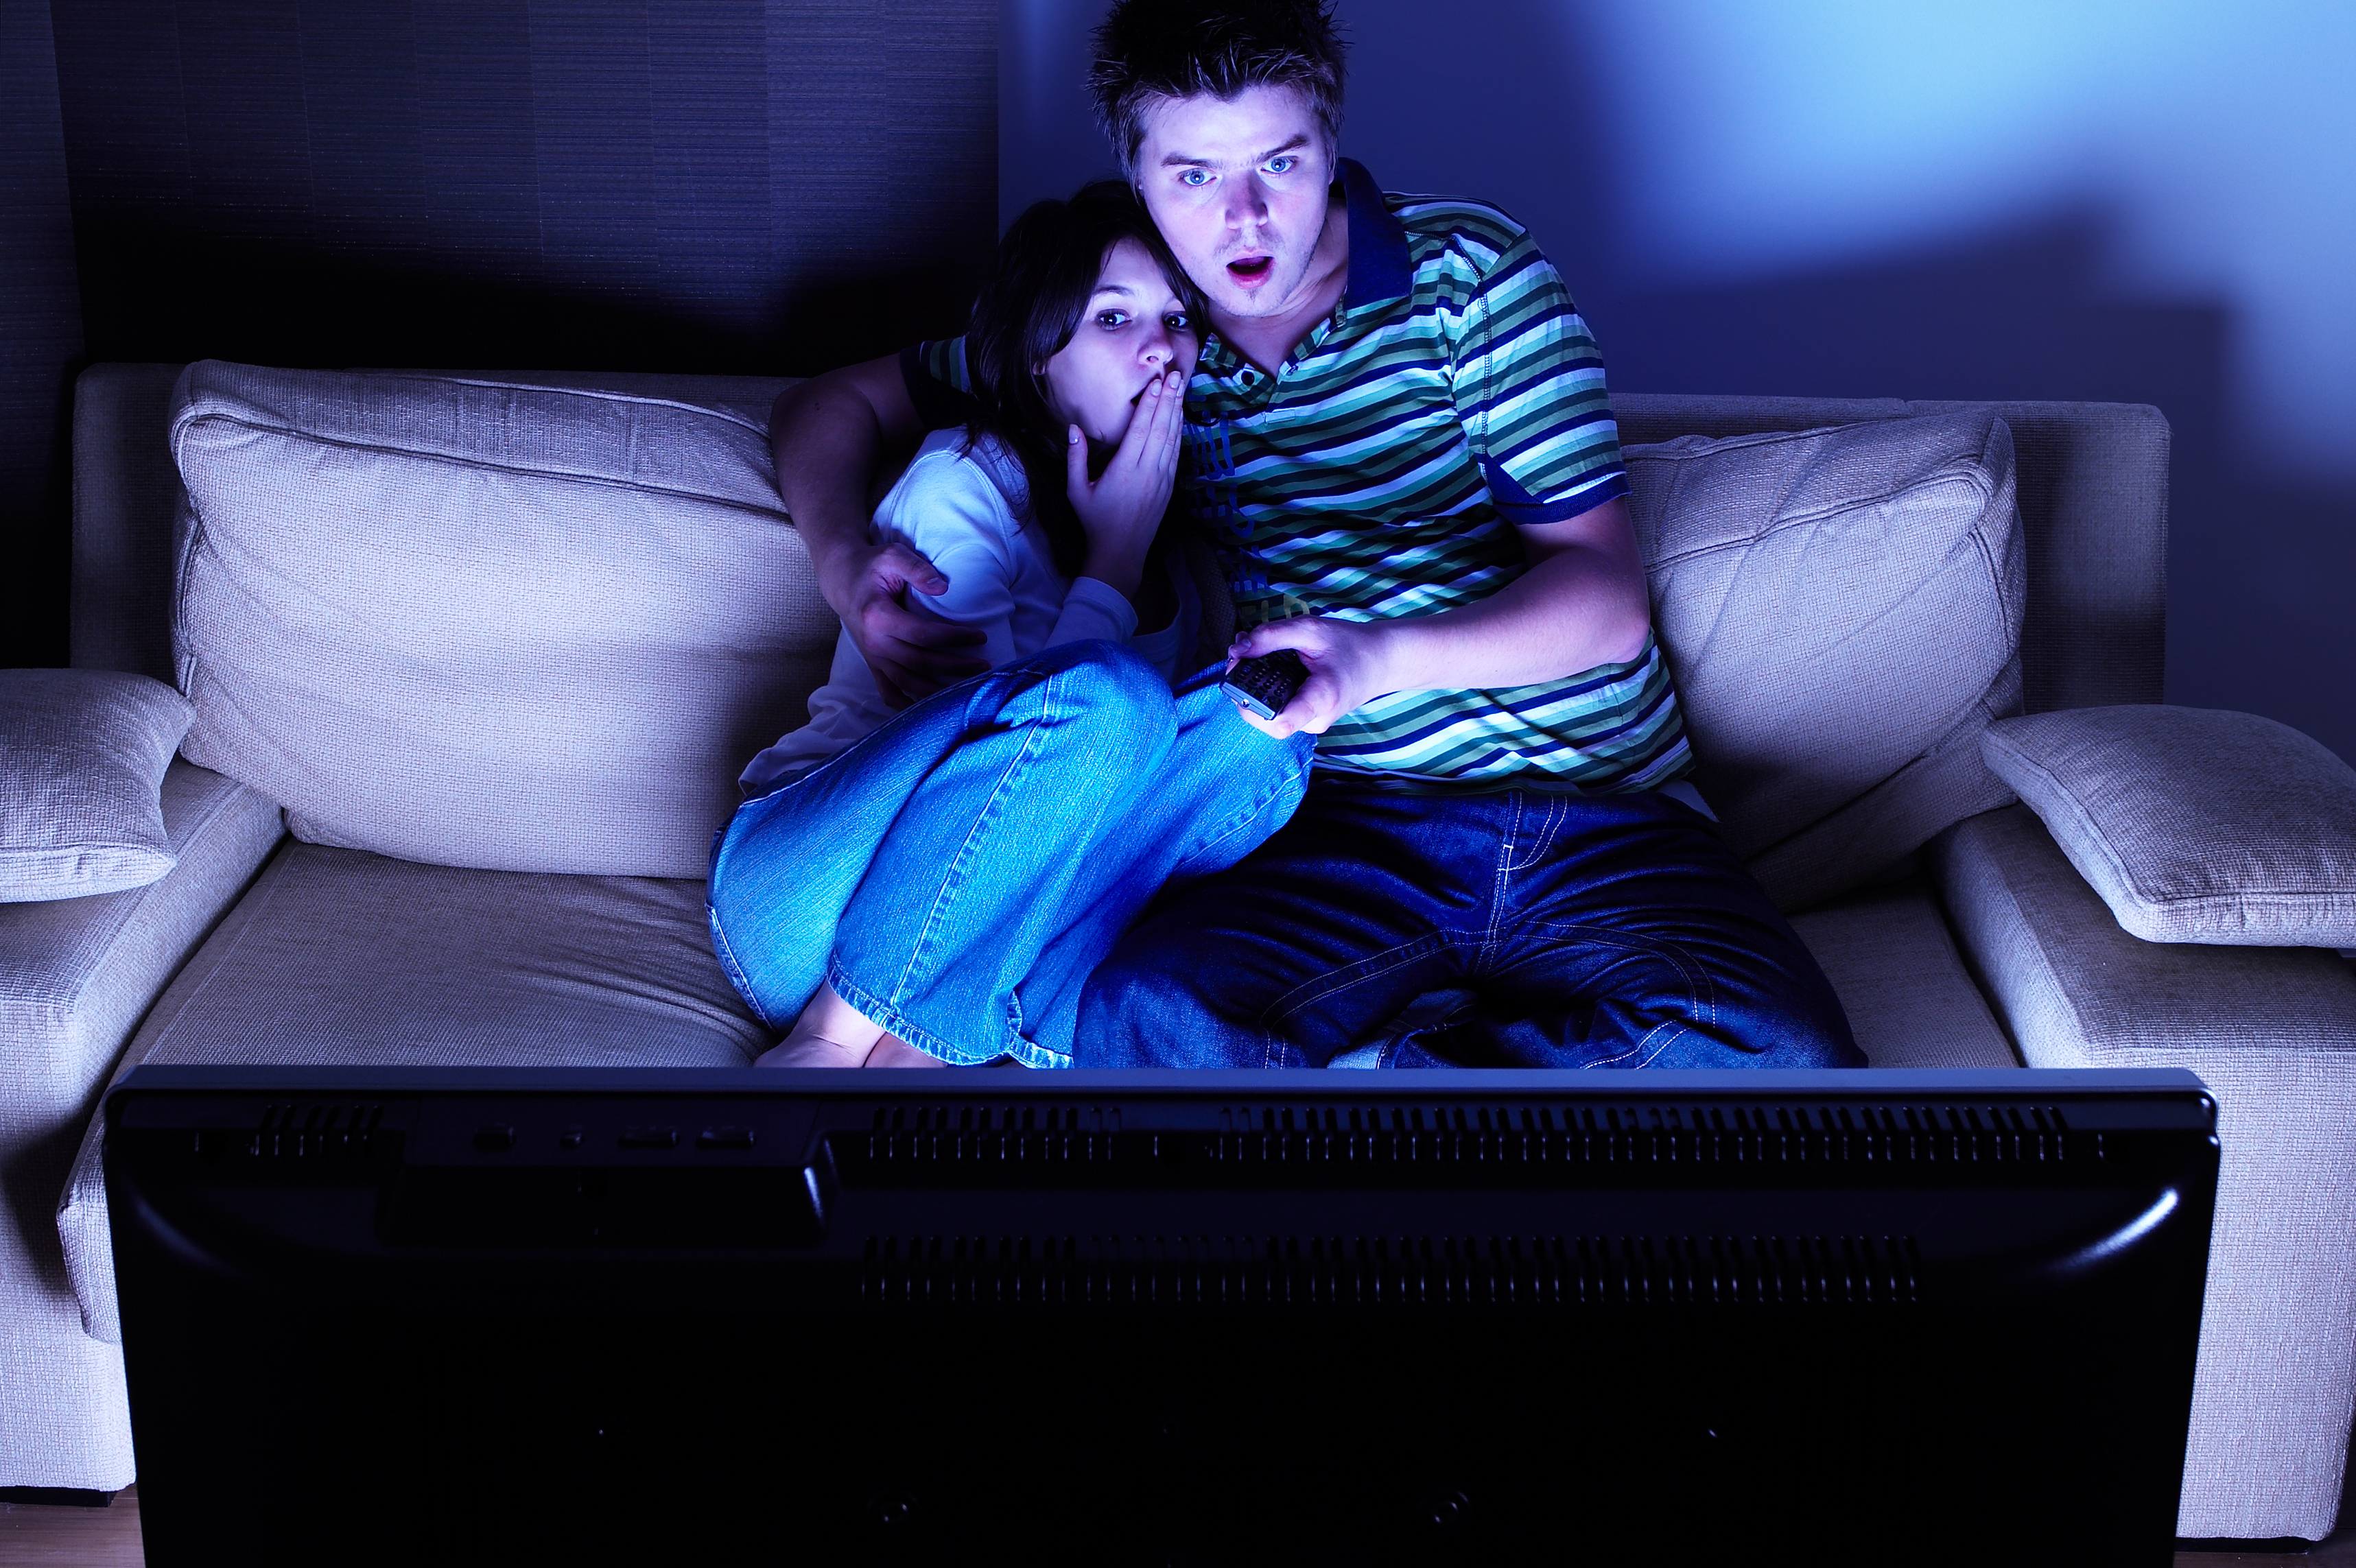 Couple-Watching-TV-Credit-iStock-144800570